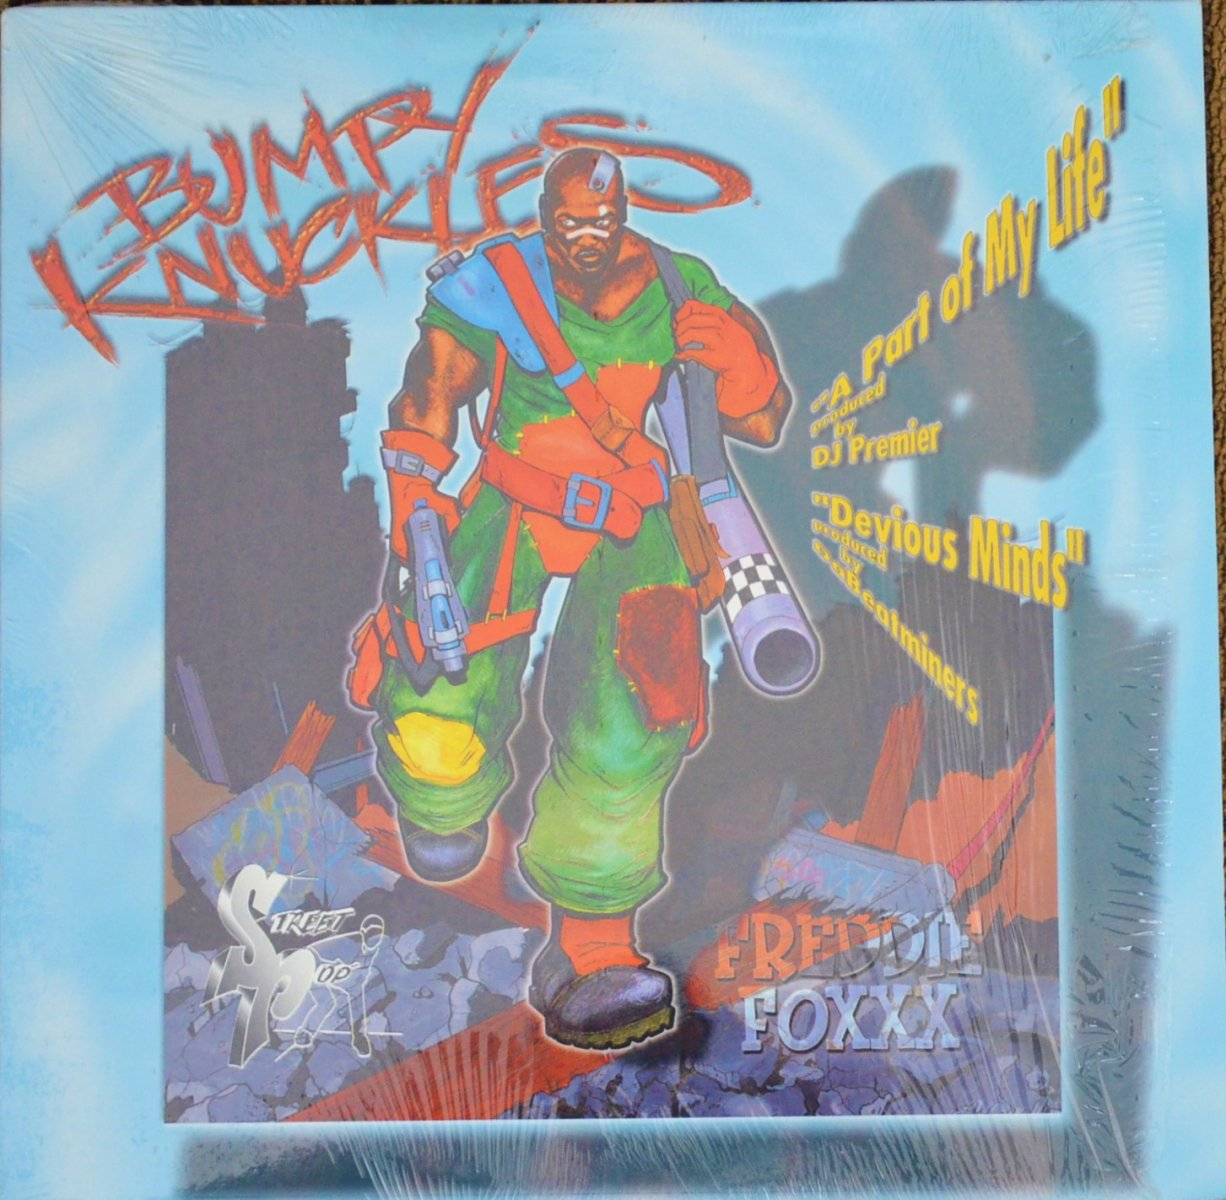 BUMPY KNUCKLES / A PART OF MY LIFE (PROD BY DJ PREMIER) / DEVIOUS MINDS (PROD BY BEATMINERZ) (12